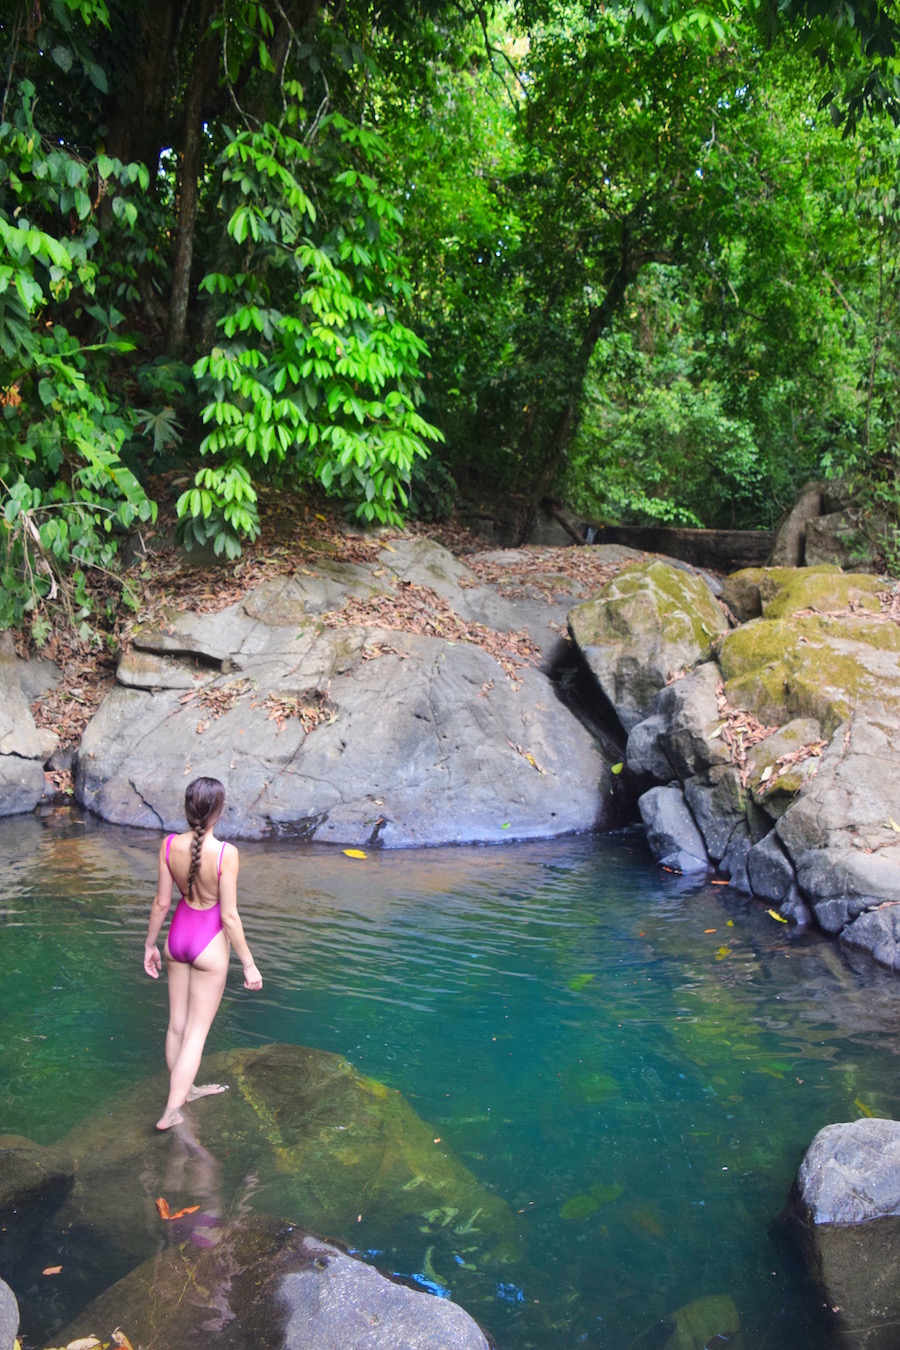 There are natural swimming holes everywhere in costa rica and its a great way to cool off.   One of the best things to do in Costa Rica.   Tessa Juliette | Travel Where to Next http://travelwheretonext.com